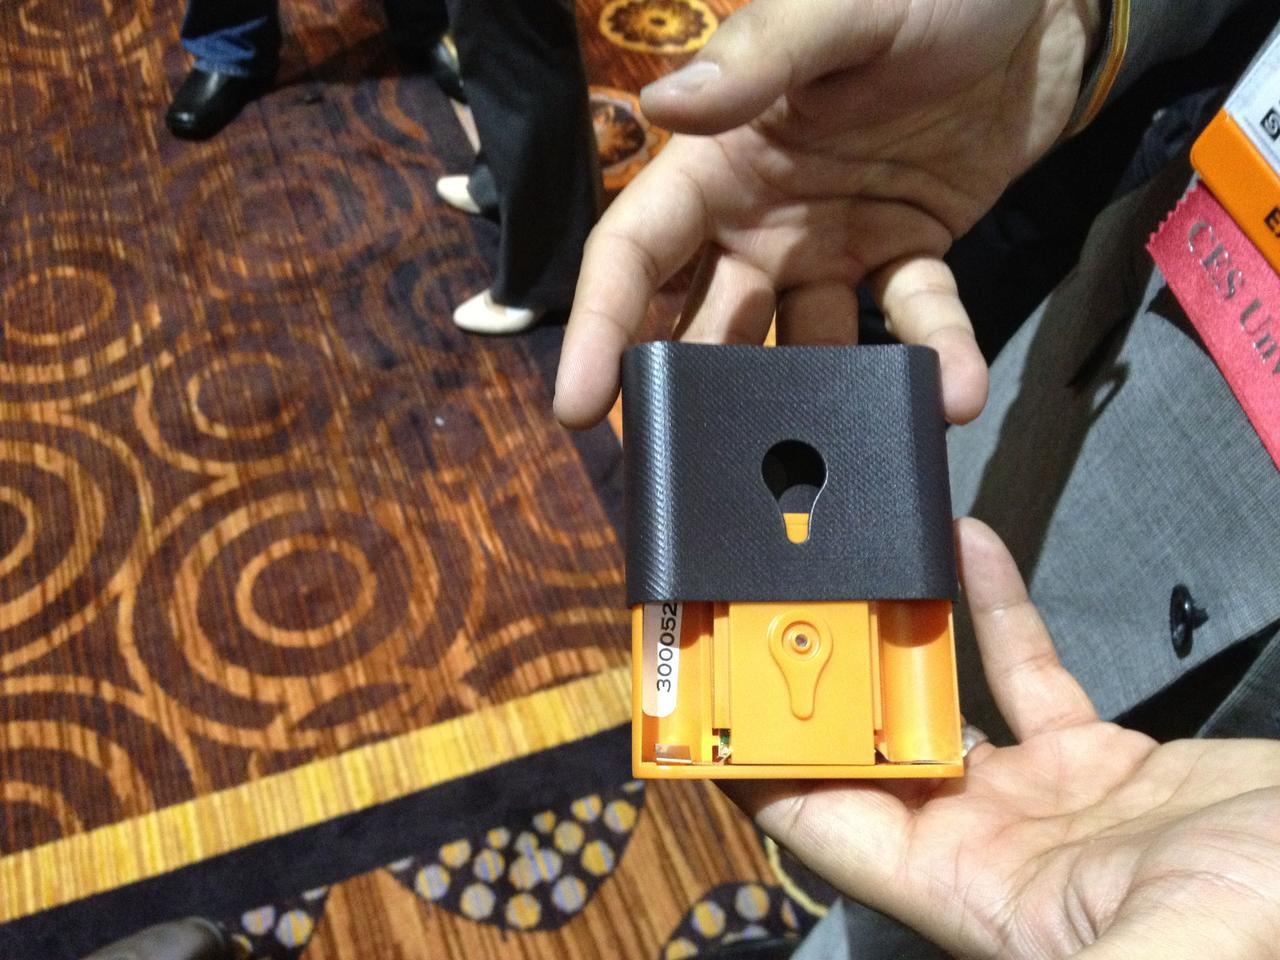 The Trakdot gadget itself is just slightly larger than a deck of cards and is powered by two AA batteries